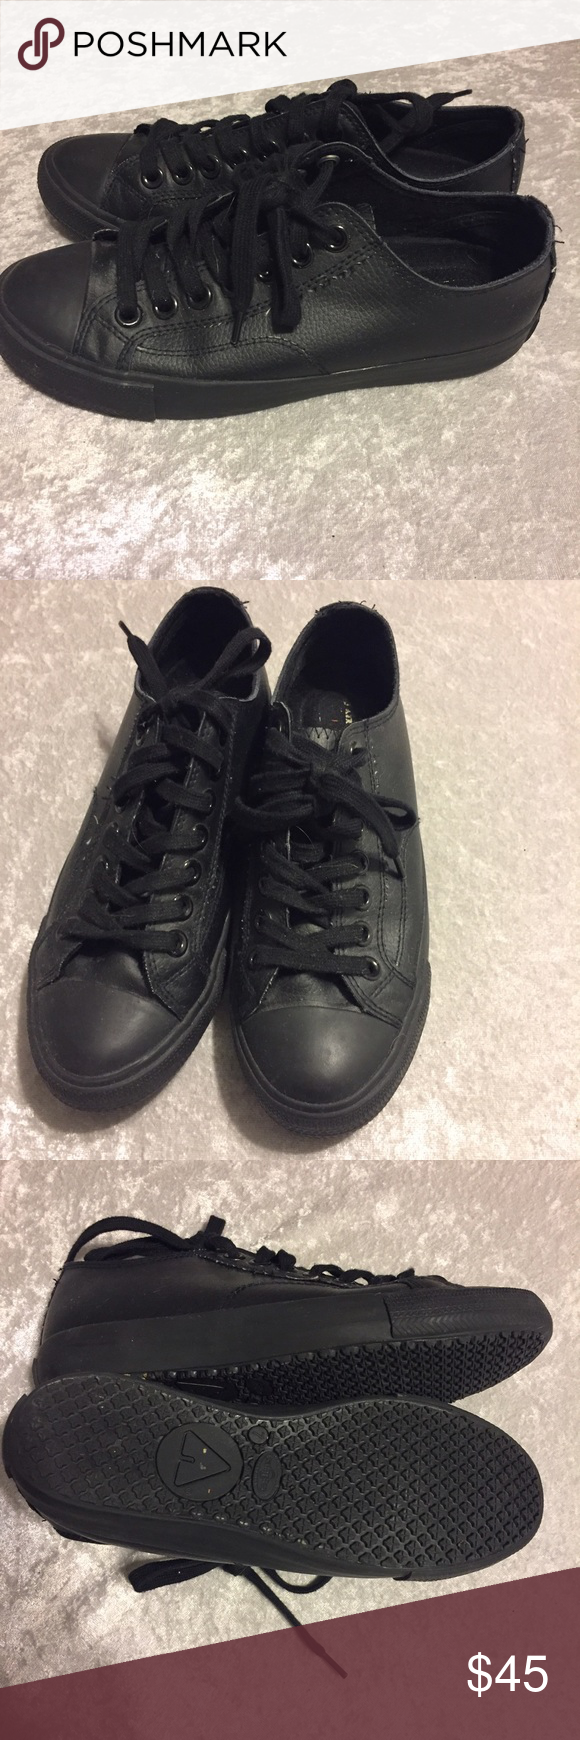 bdb0c5a1b17b05 SafeTsteps like Converse non slip ▫️Details  Non-Slip work shoes that look  like